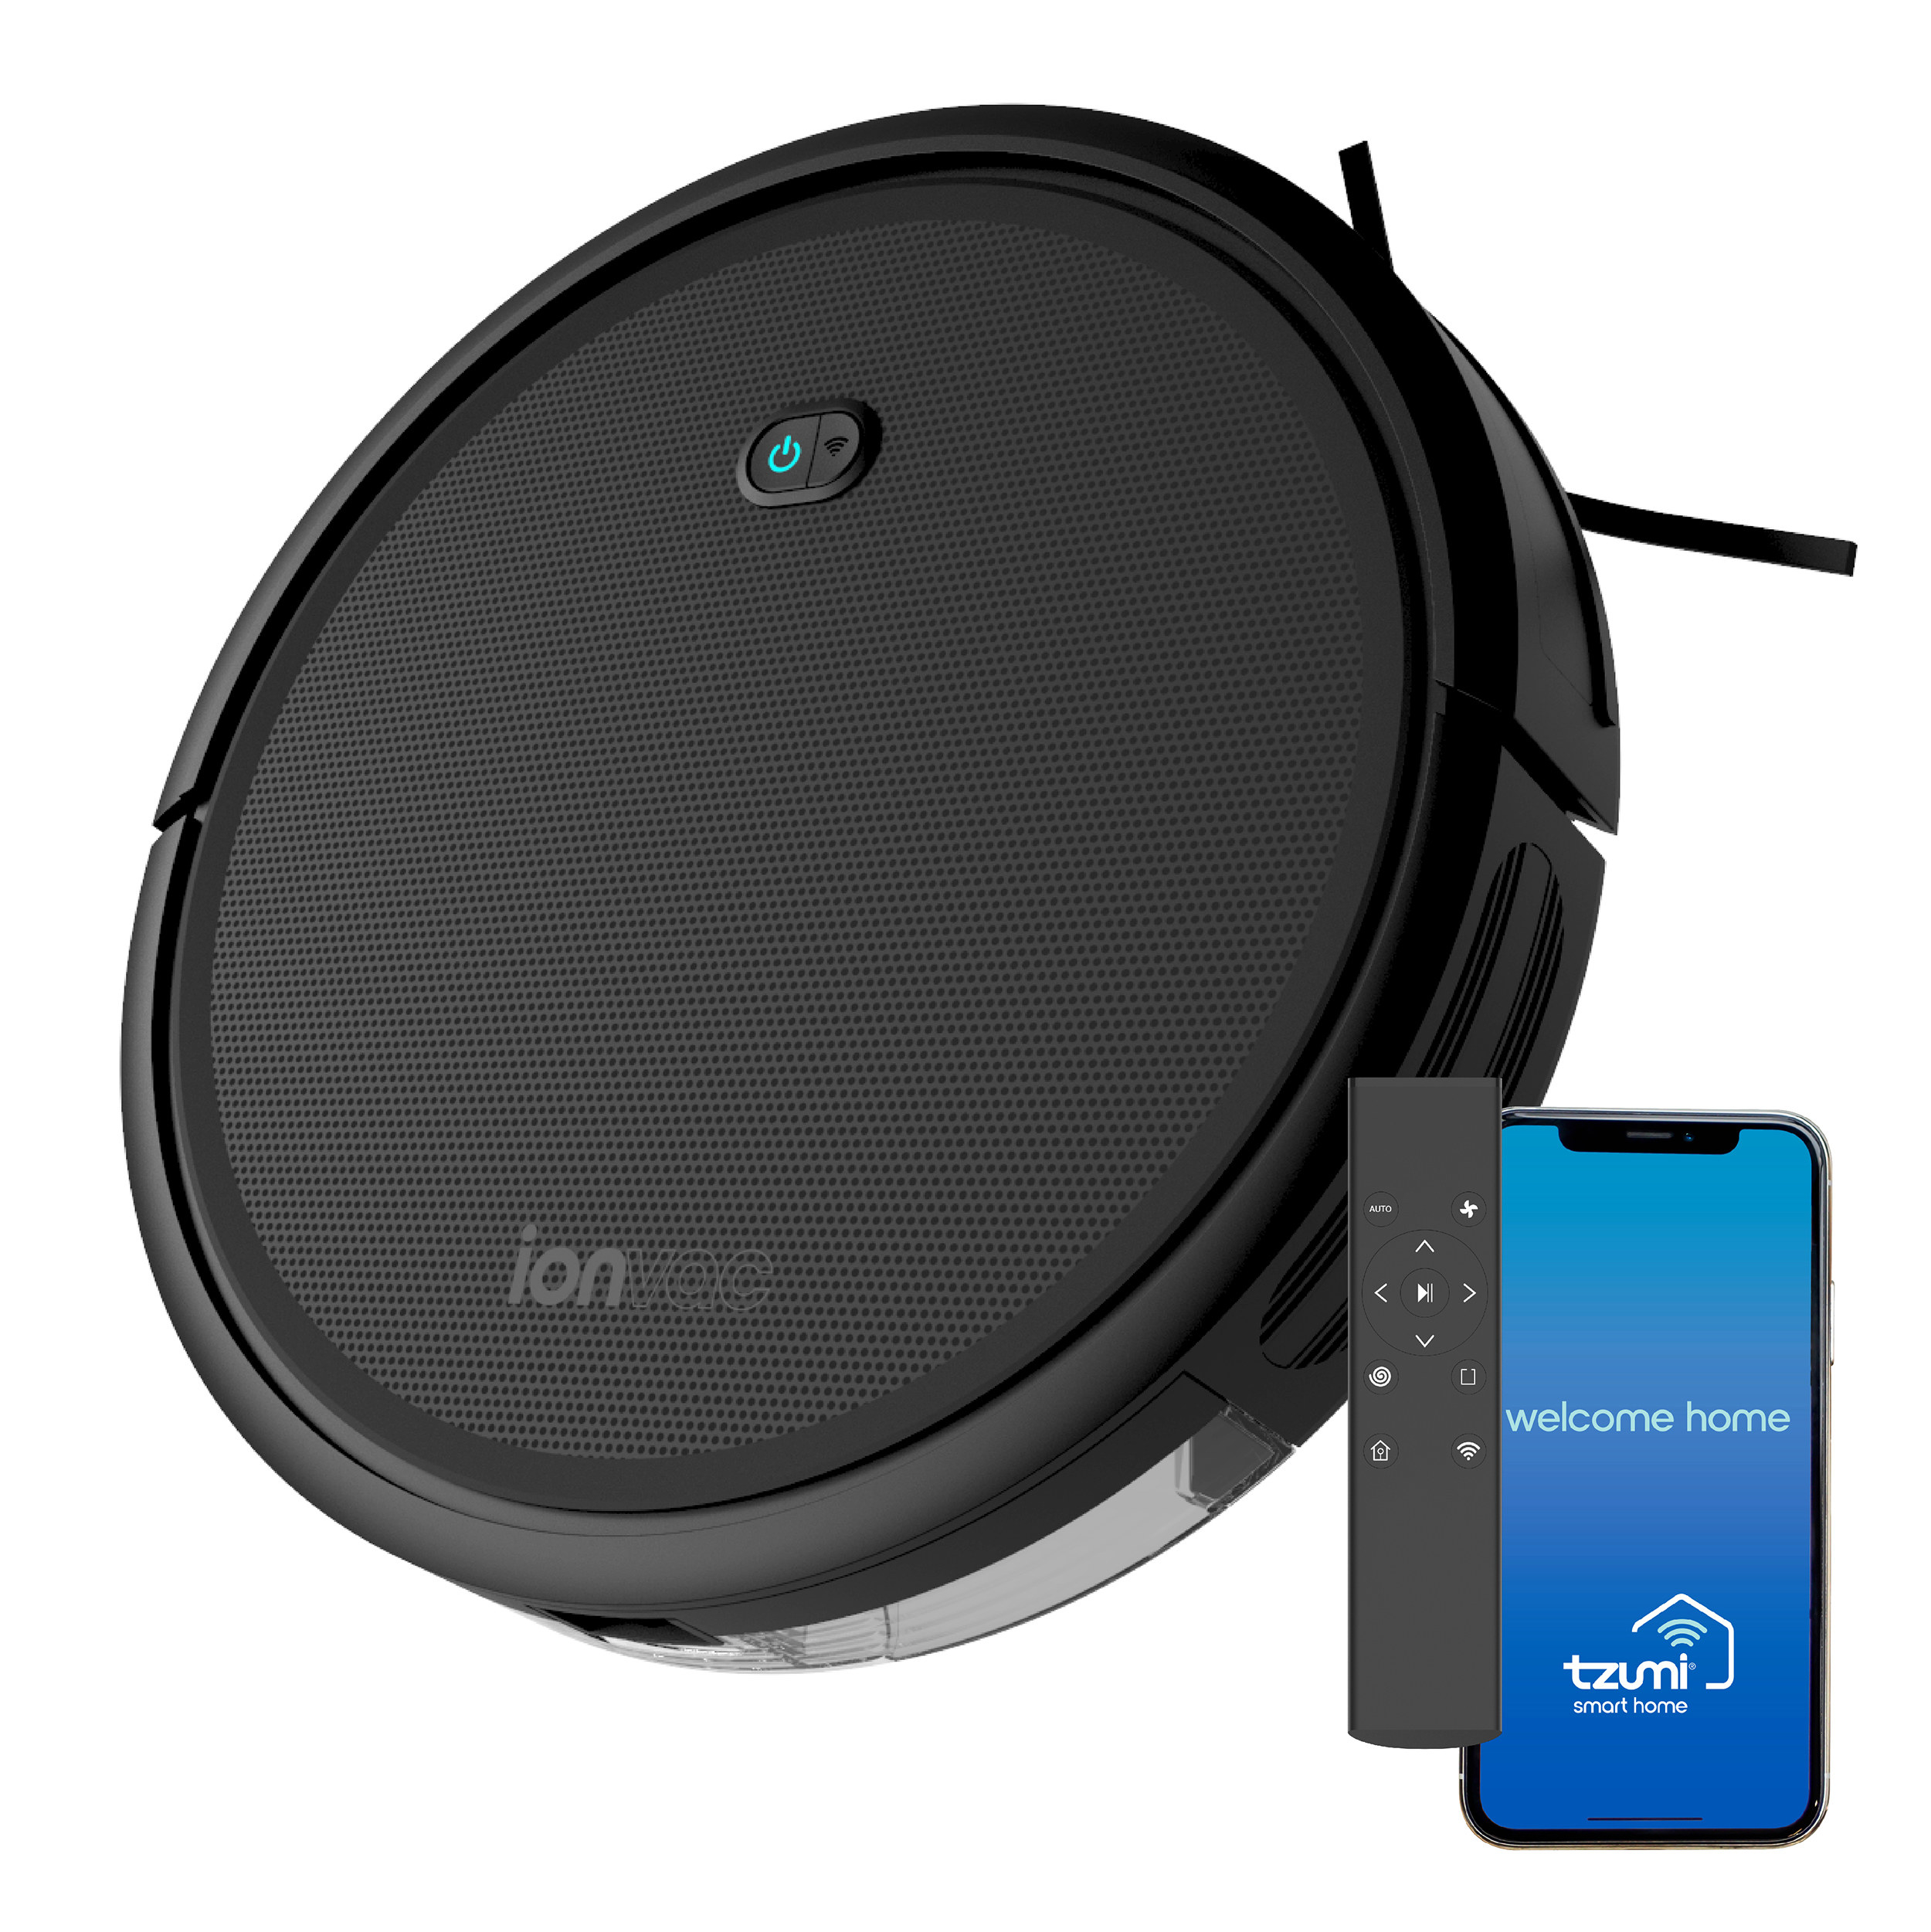 the robot vacuum, the remote, and the cellphone app